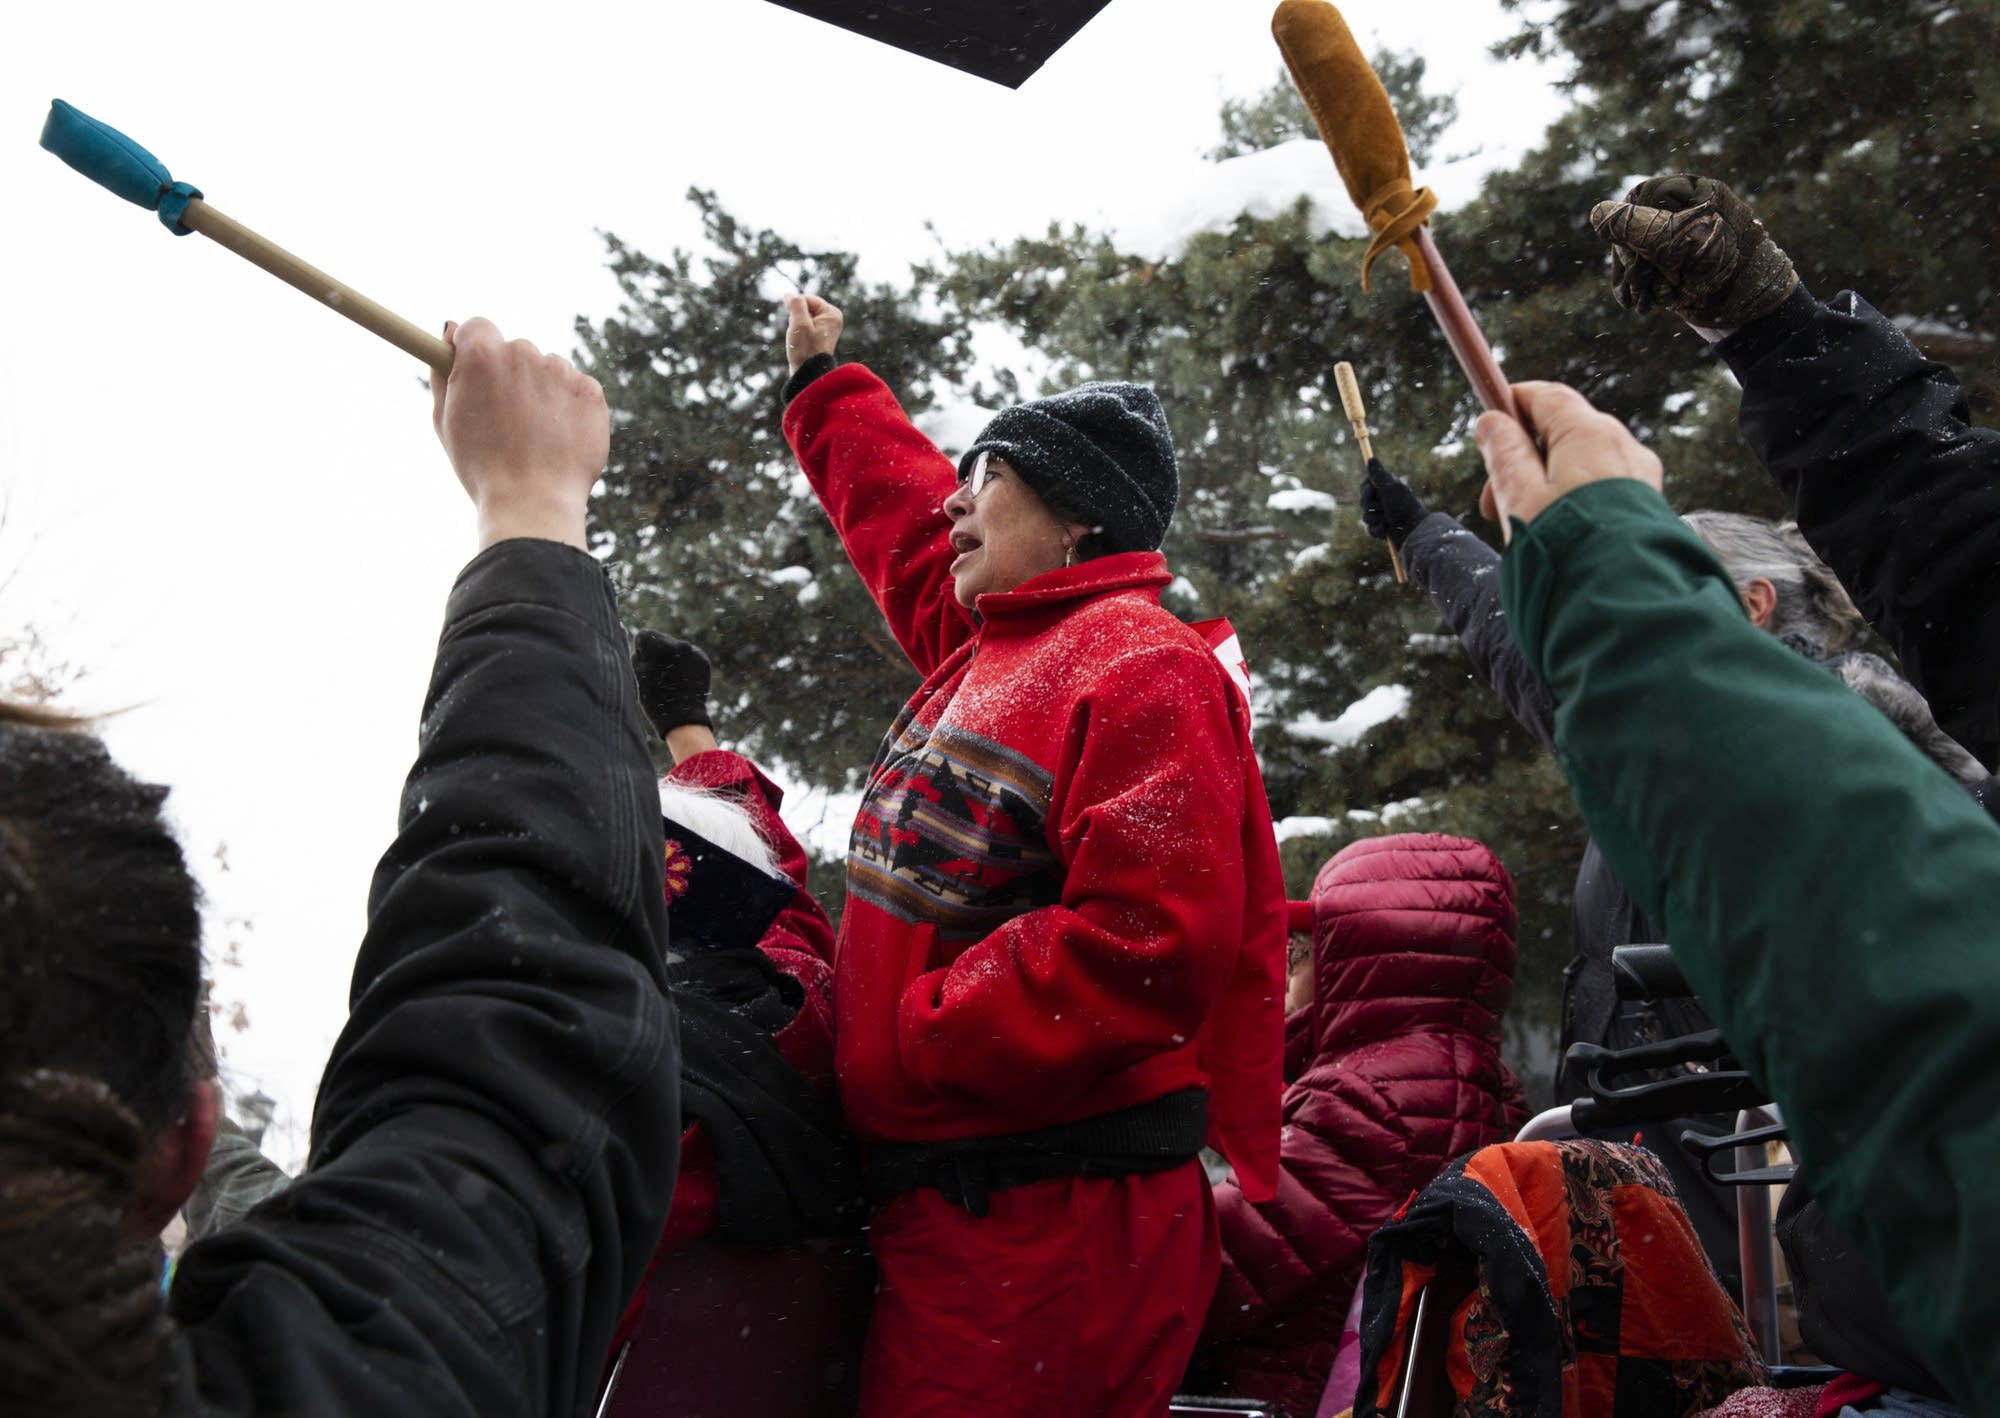 Pam Gokey raises her arms at the end of the march.